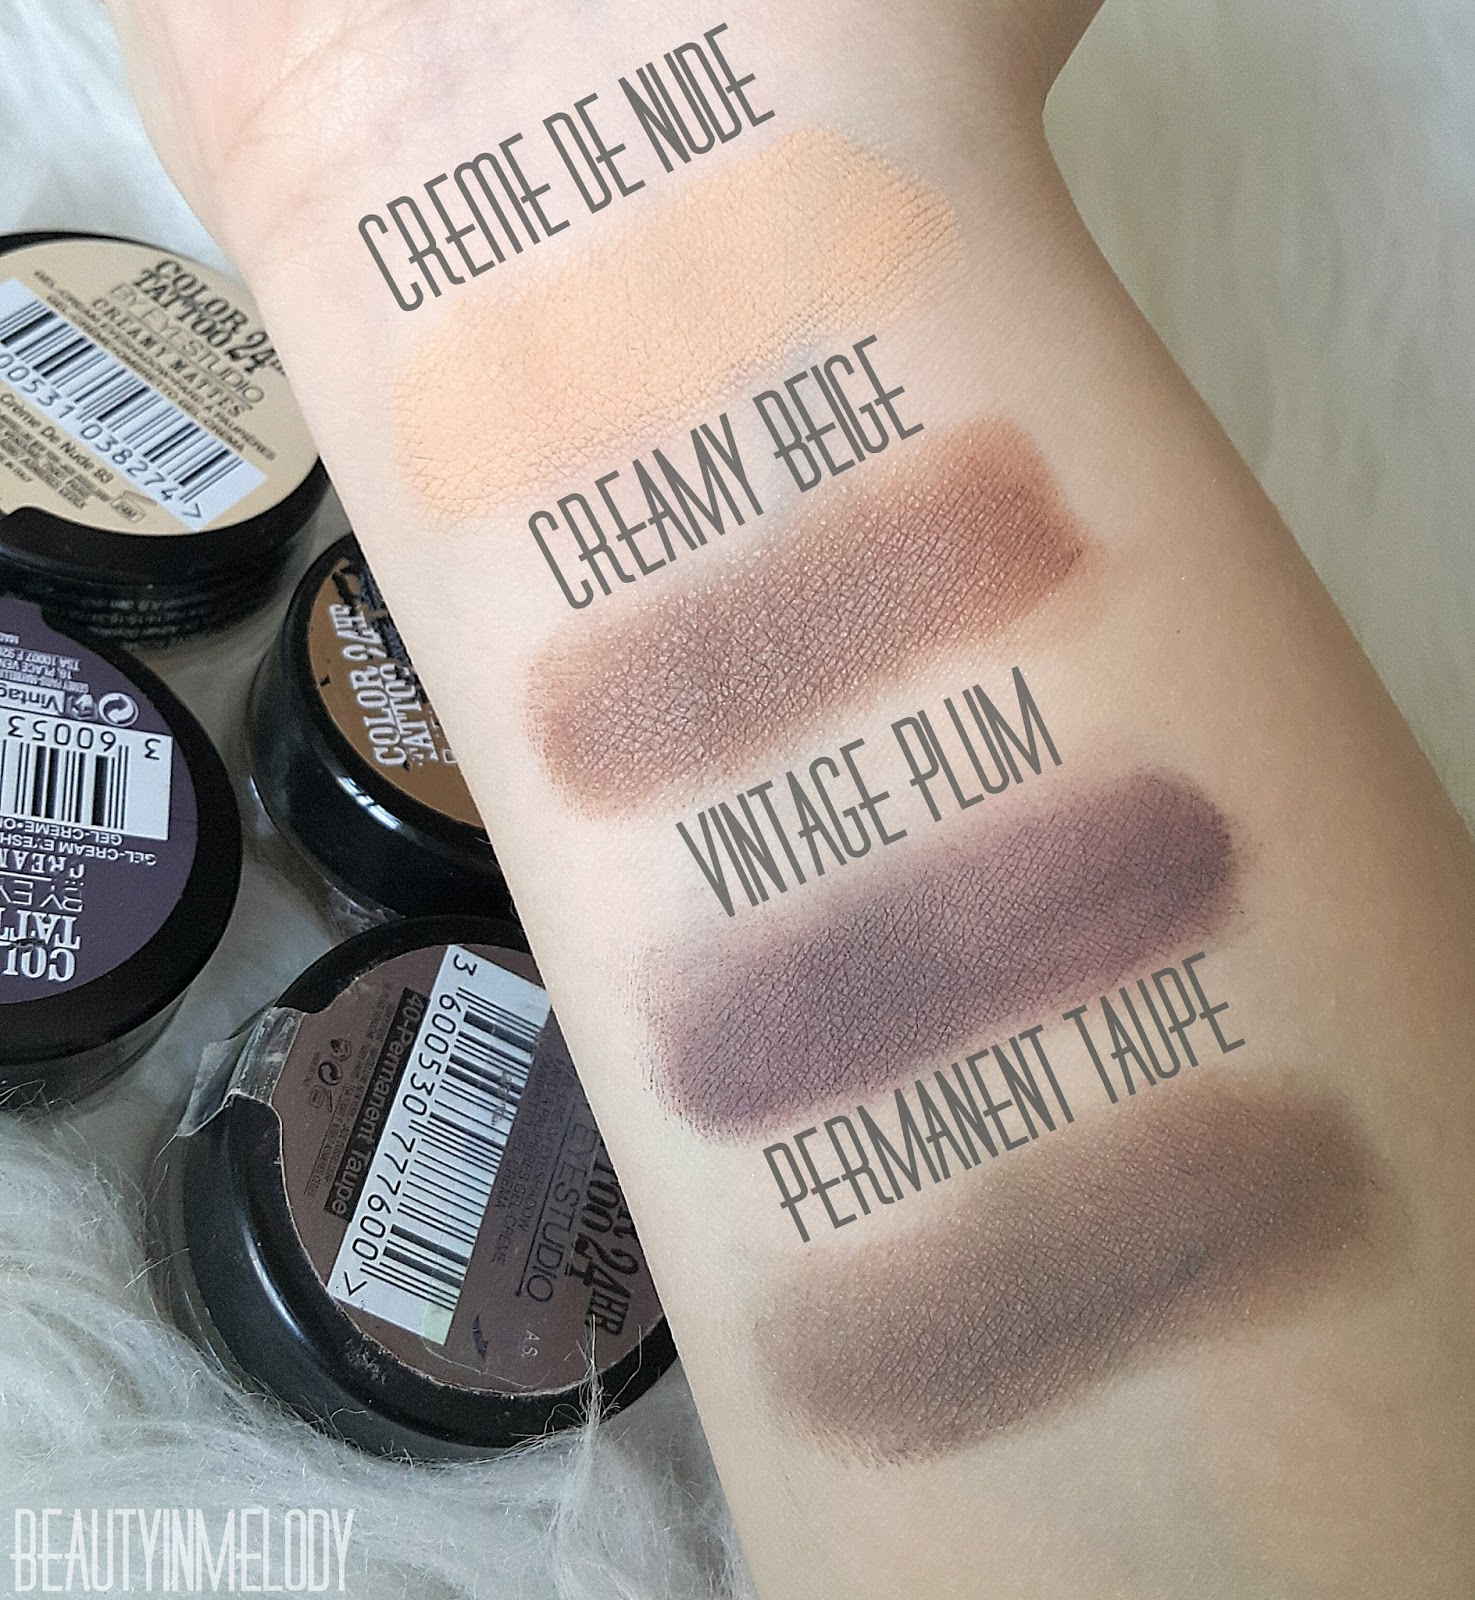 Beauty in melody maybelline 24hr color tattoo creamy for Color tattoo maybelline